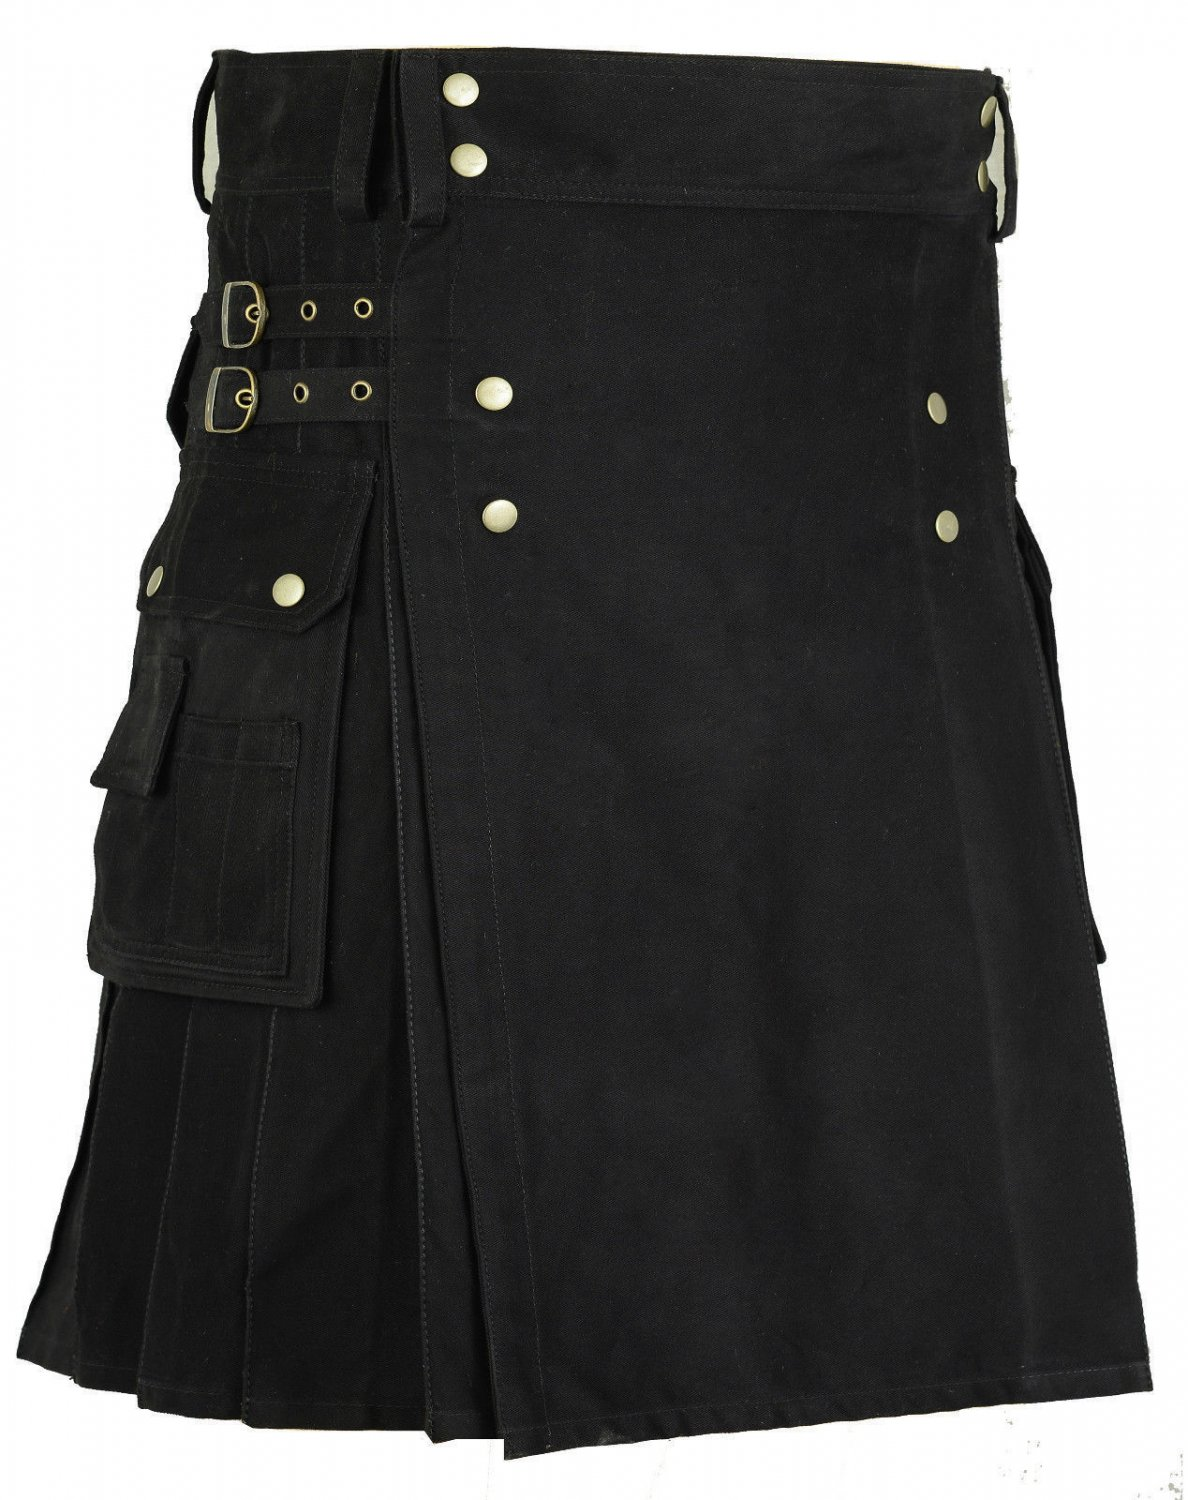 Size 36 Handmade Gothic Black Pure Cotton Kilt With Utility Side Cargo Pockets